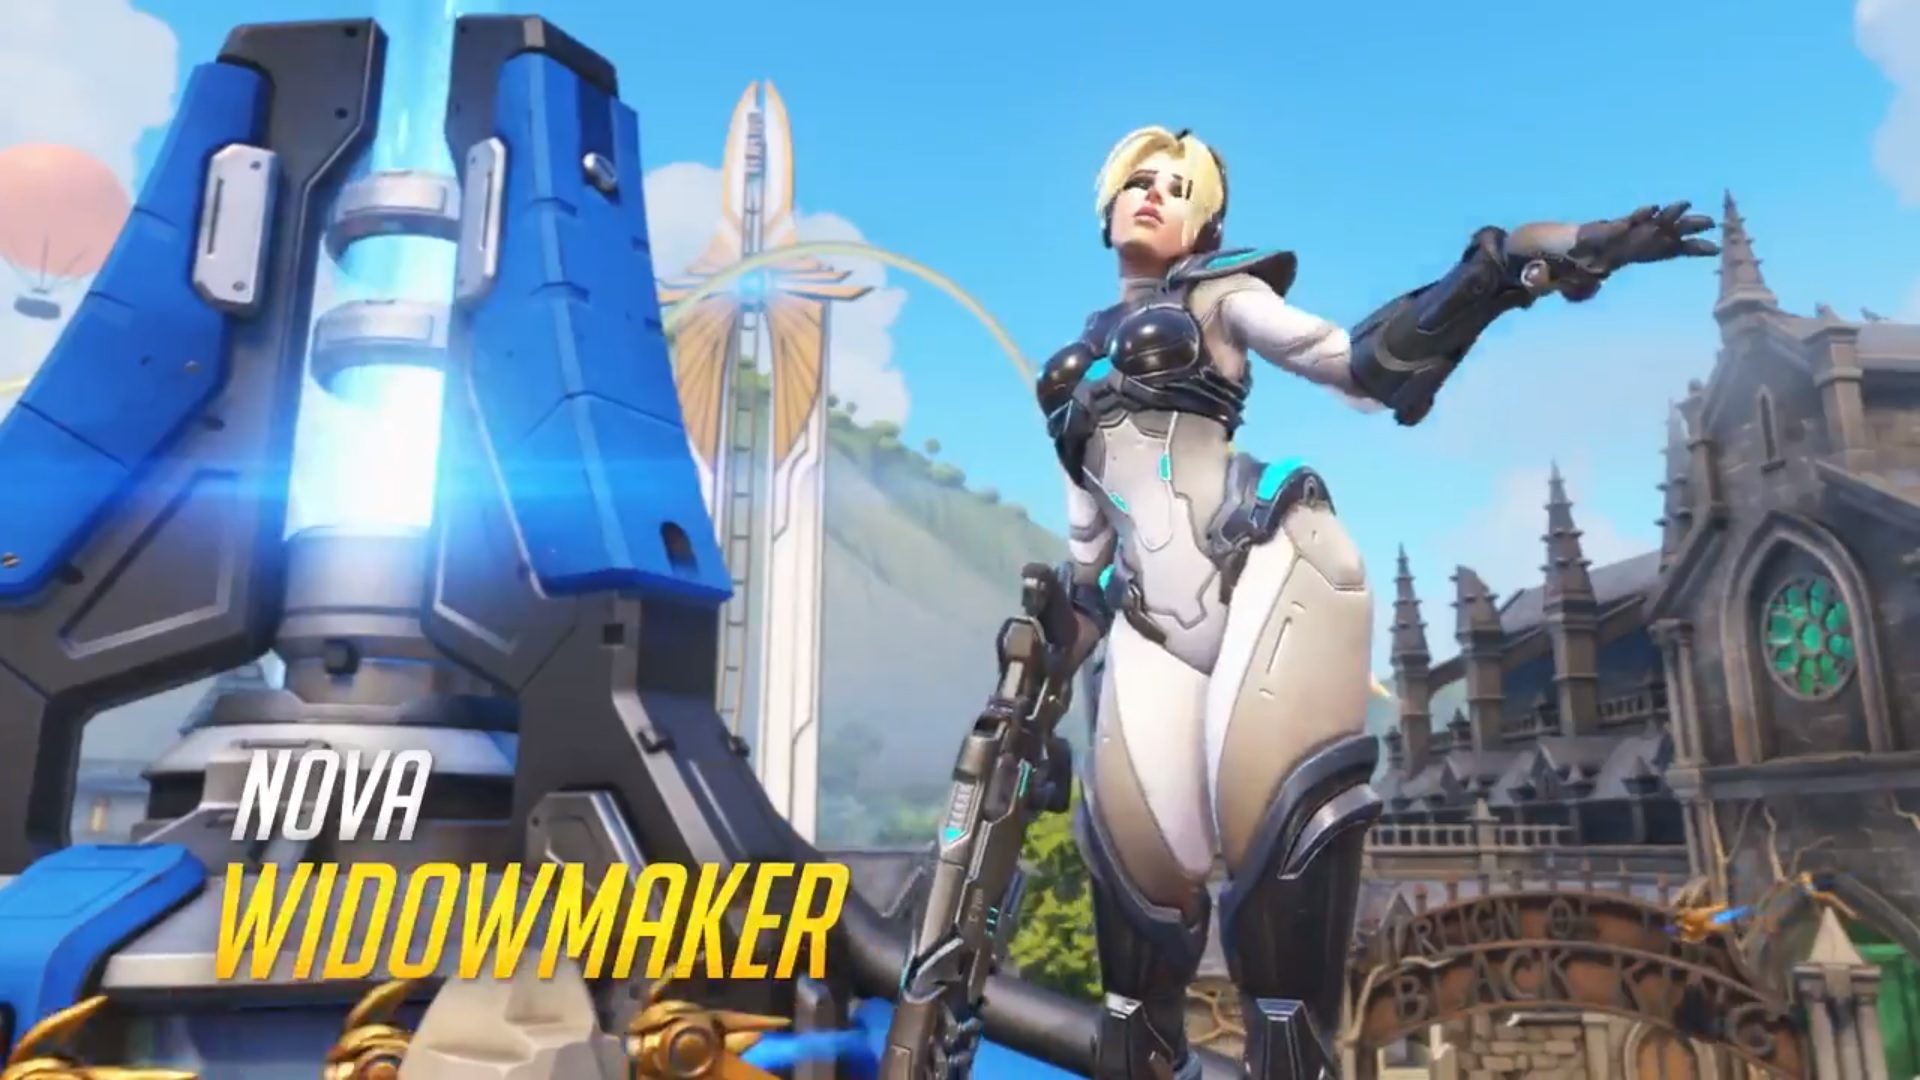 if-you-were-pumped-about-overwatchs-blizzard-world-wait-until-you-see-the-skins-social.jpg